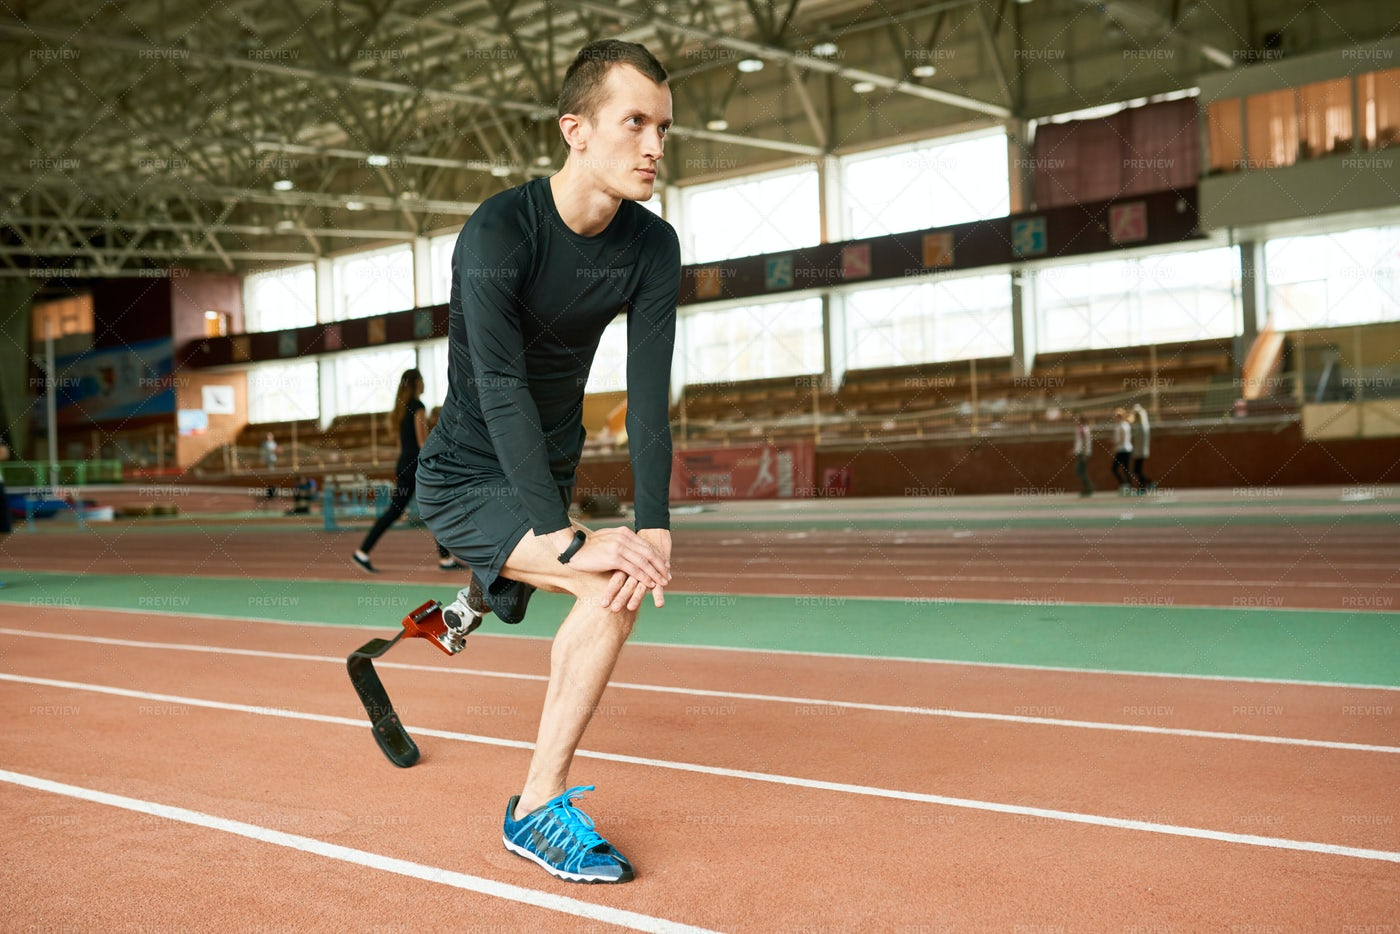 Handicapped Sportsman Stretching: Stock Photos